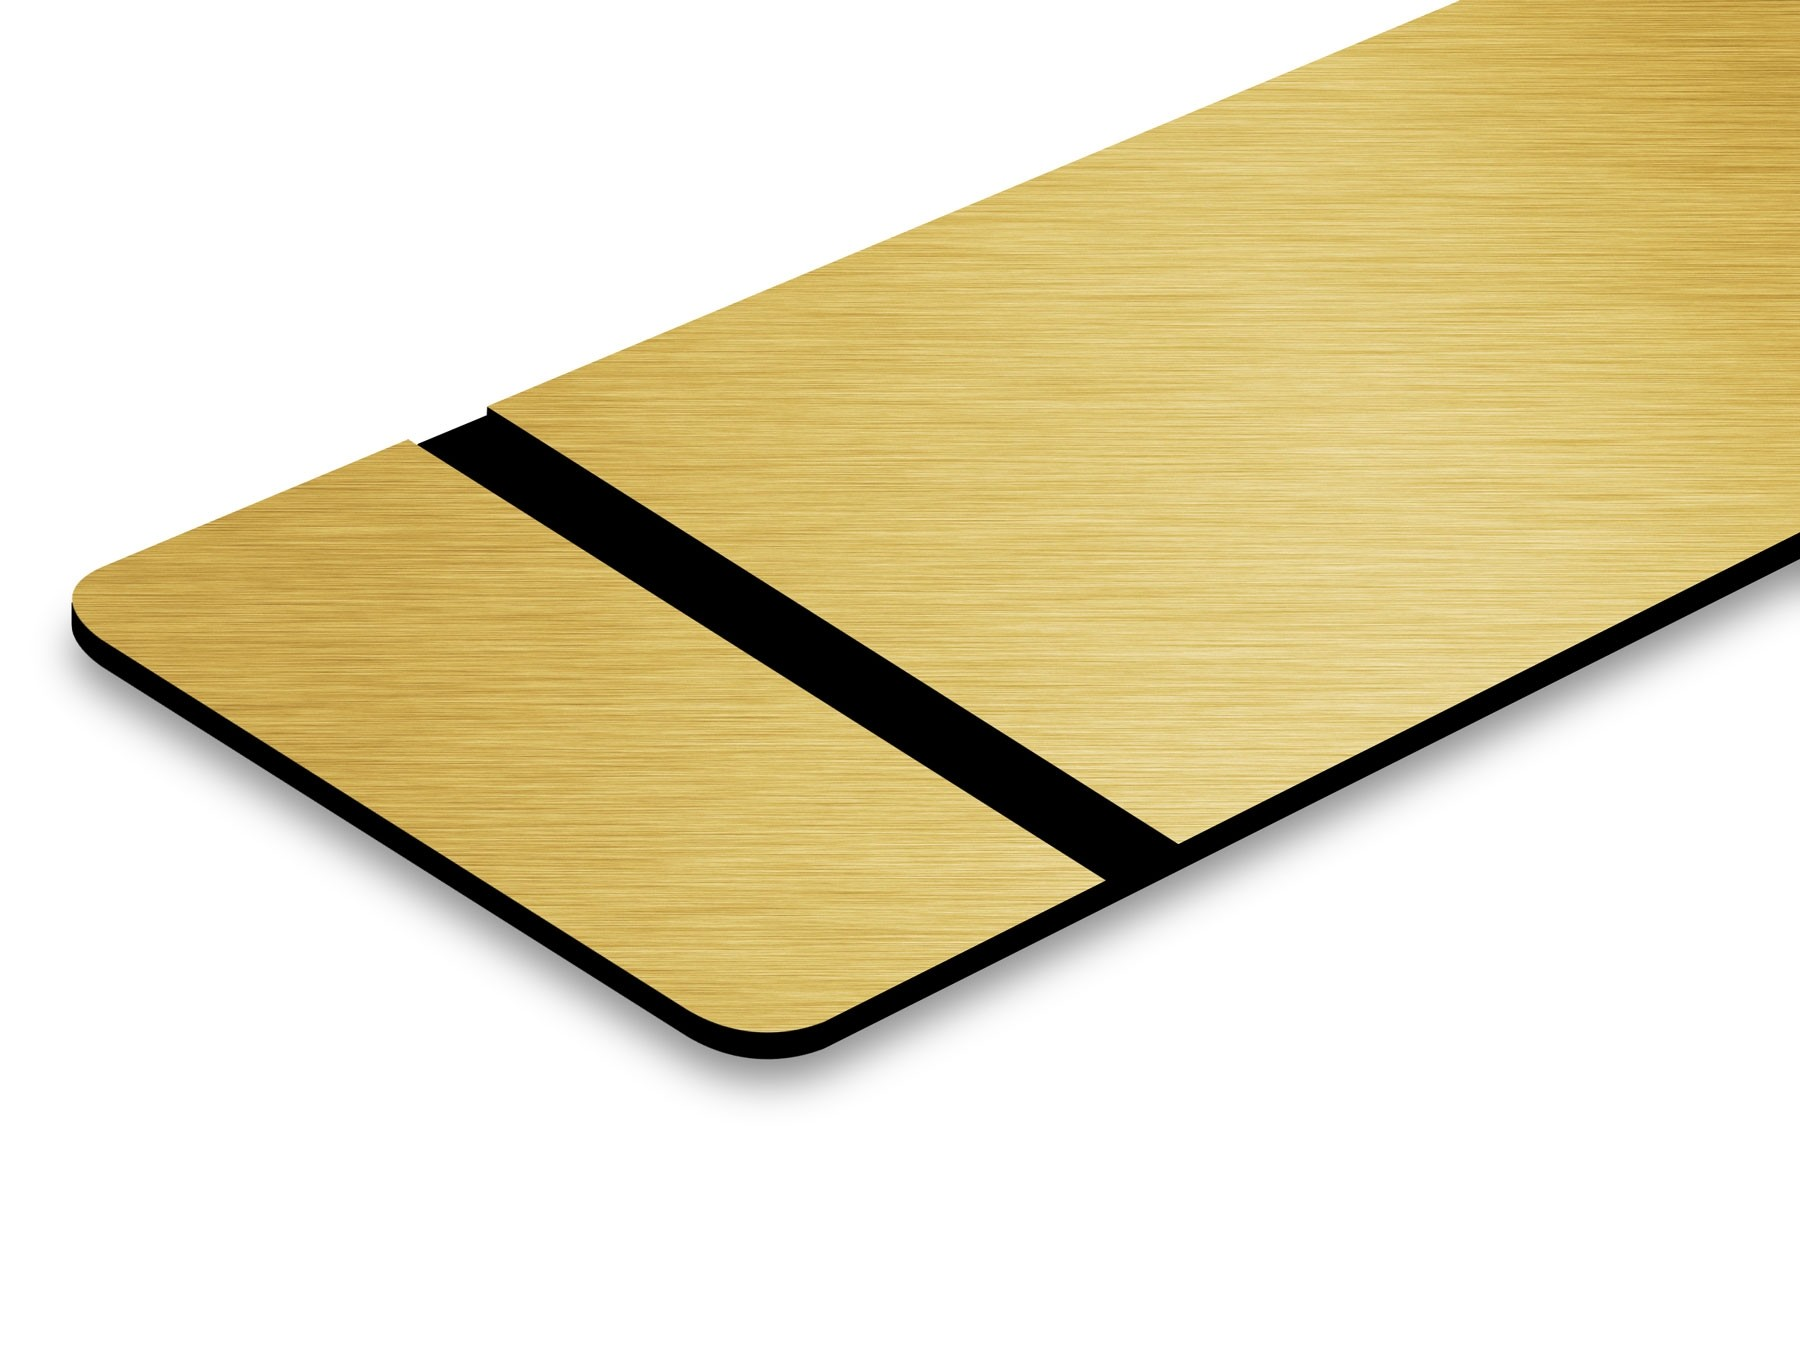 LT734-202ADH Br Gold/Black with Ad 0,5mm